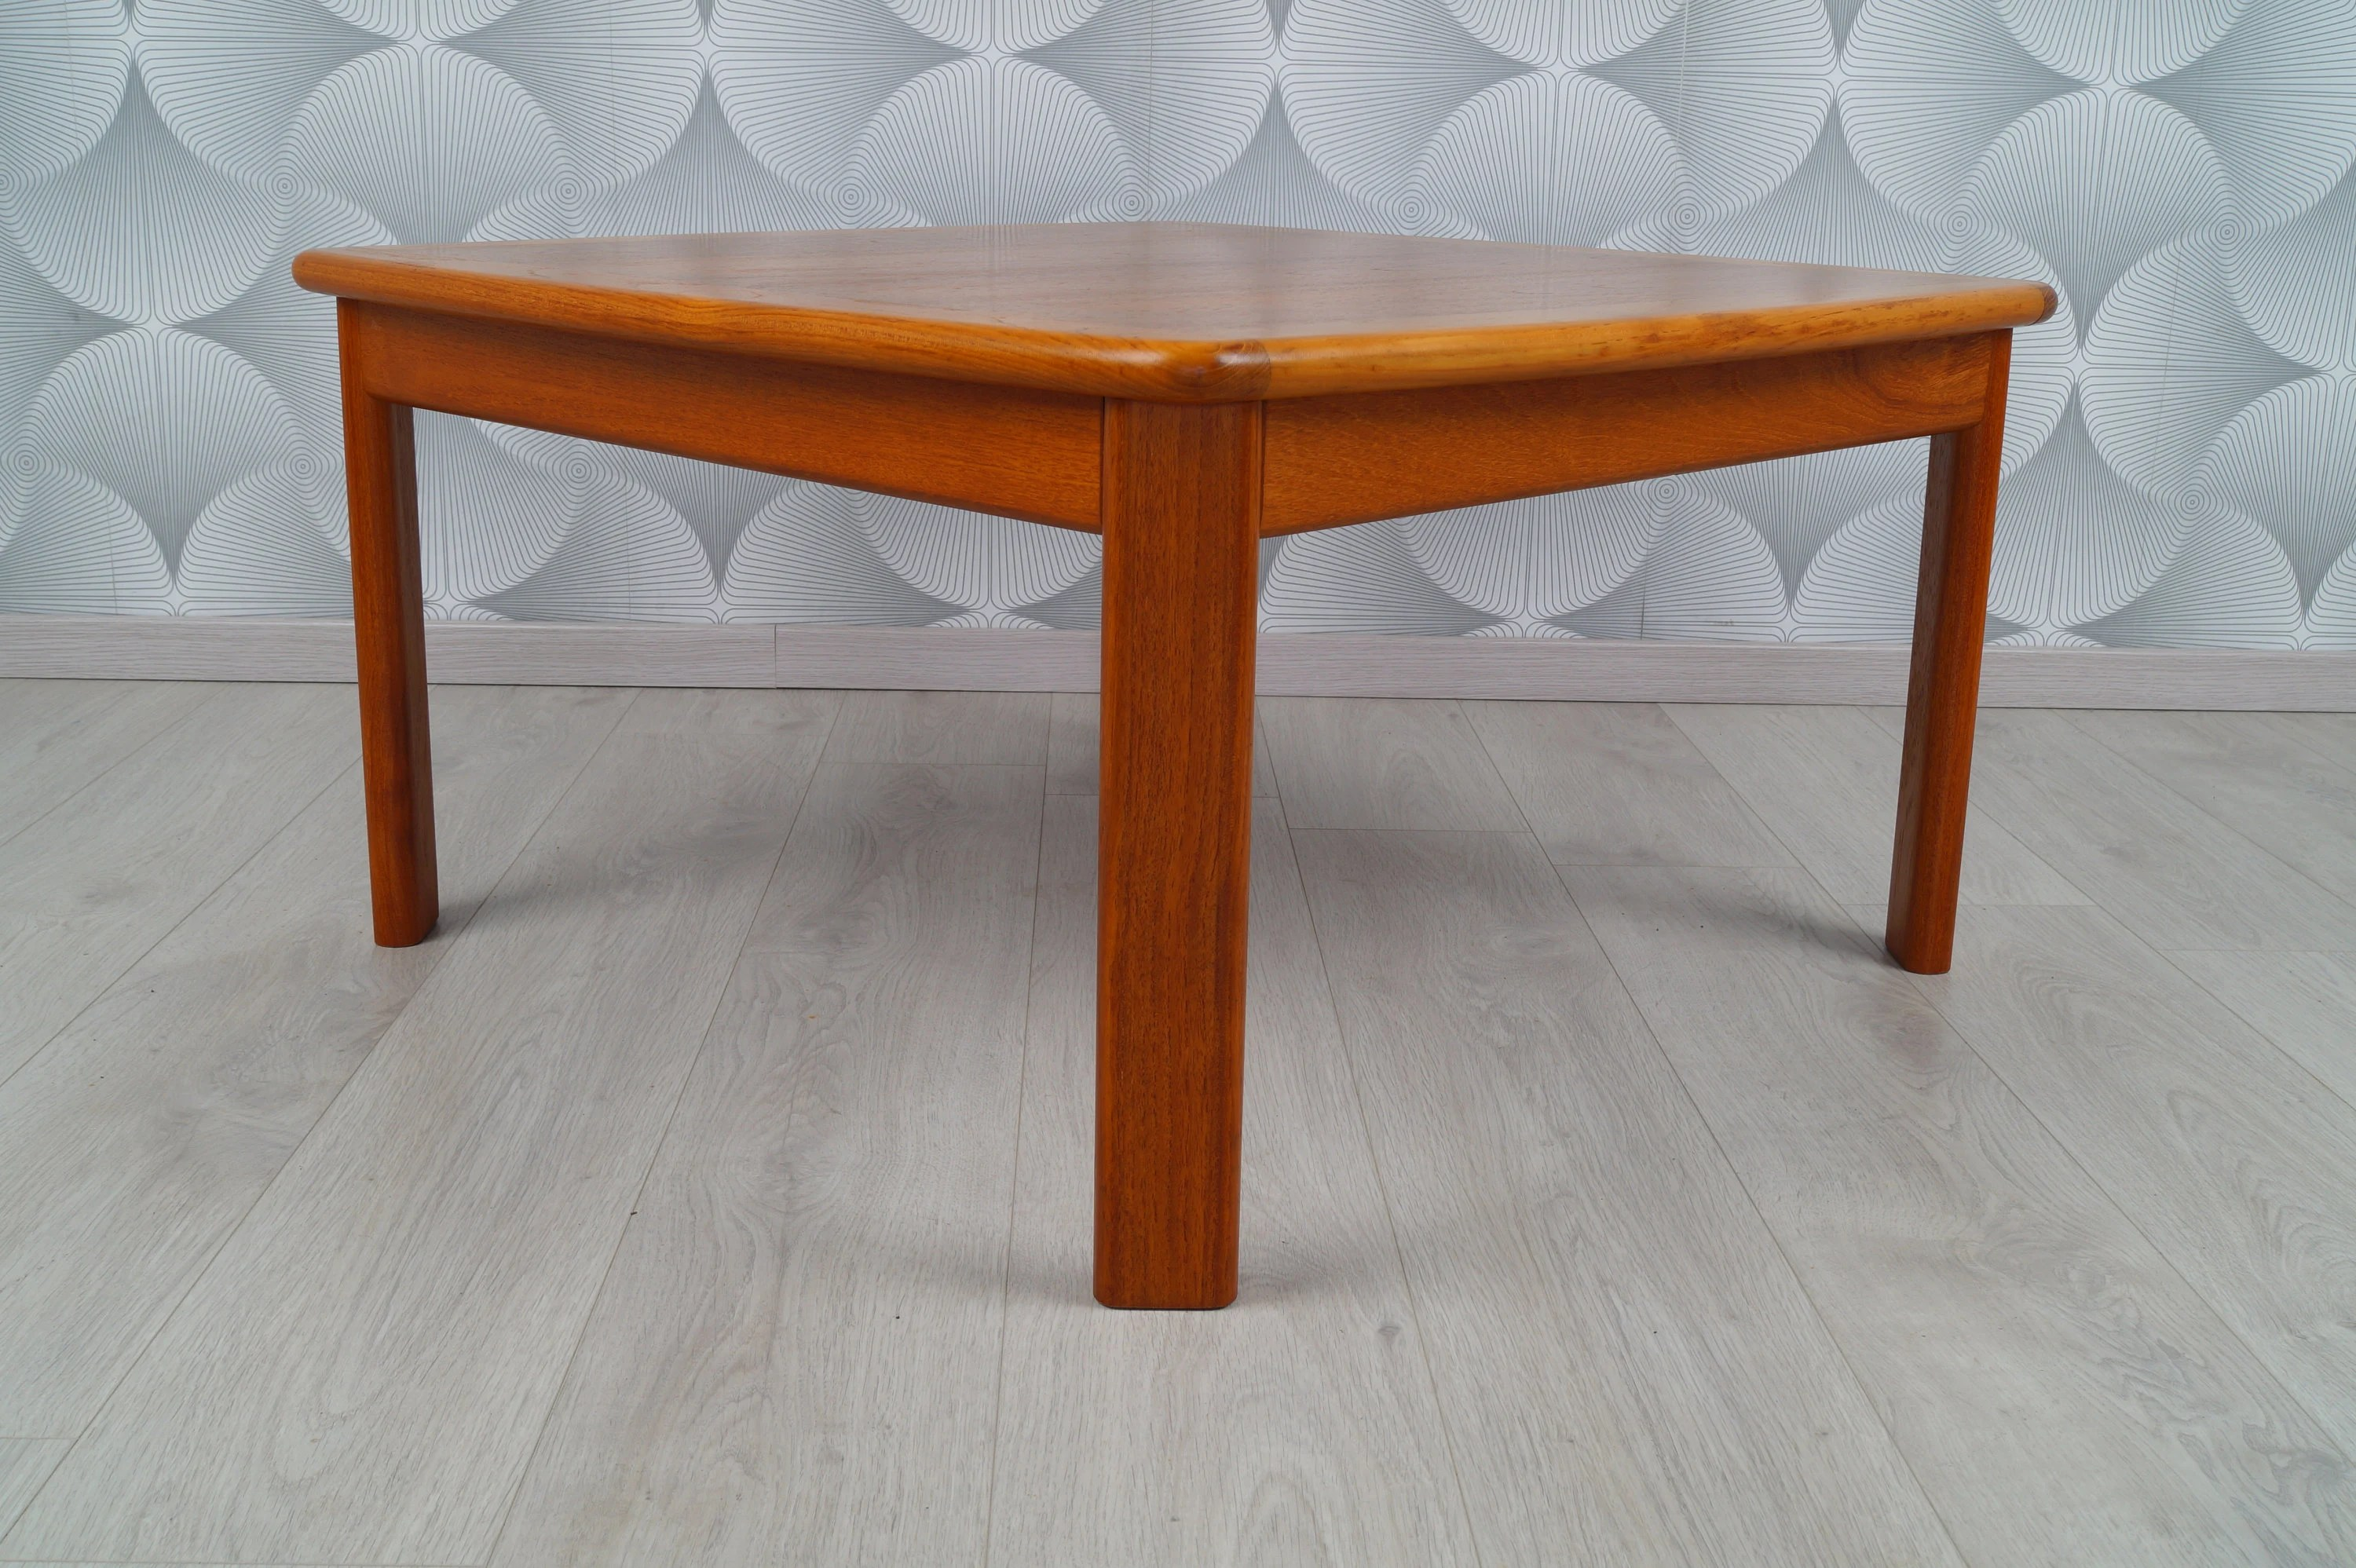 Danish Design Couchtisch Teak Coffee Table Side Table Square 60s Danish Design Midcentury